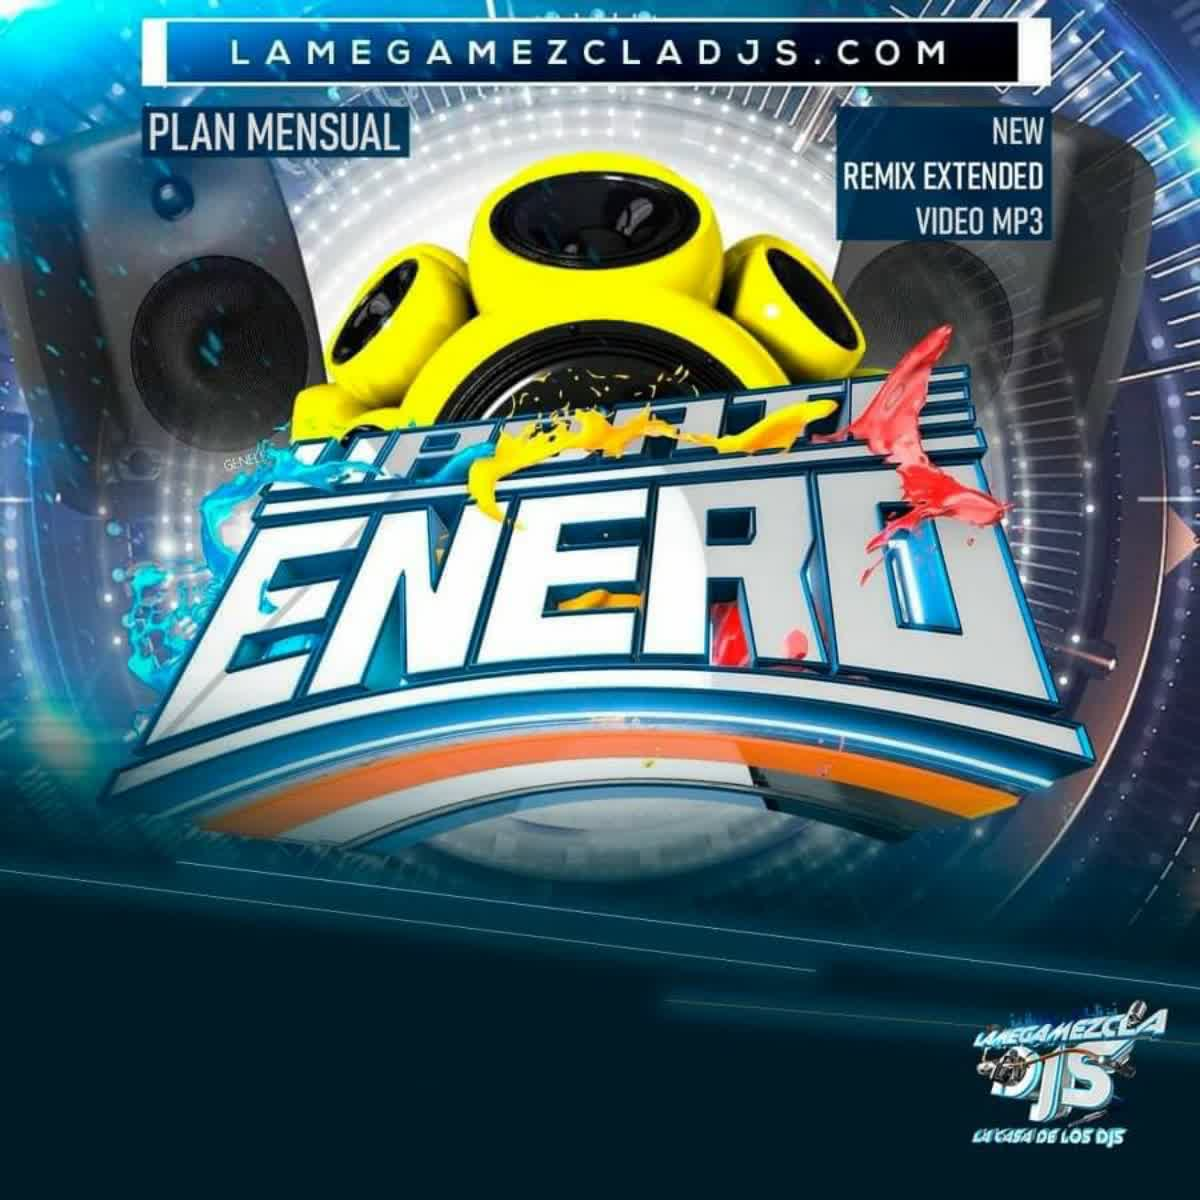 Home Boys - Arrancame La Vida - MR DJ - Merengue - Intro + Outro(KickBass) - 145BPM